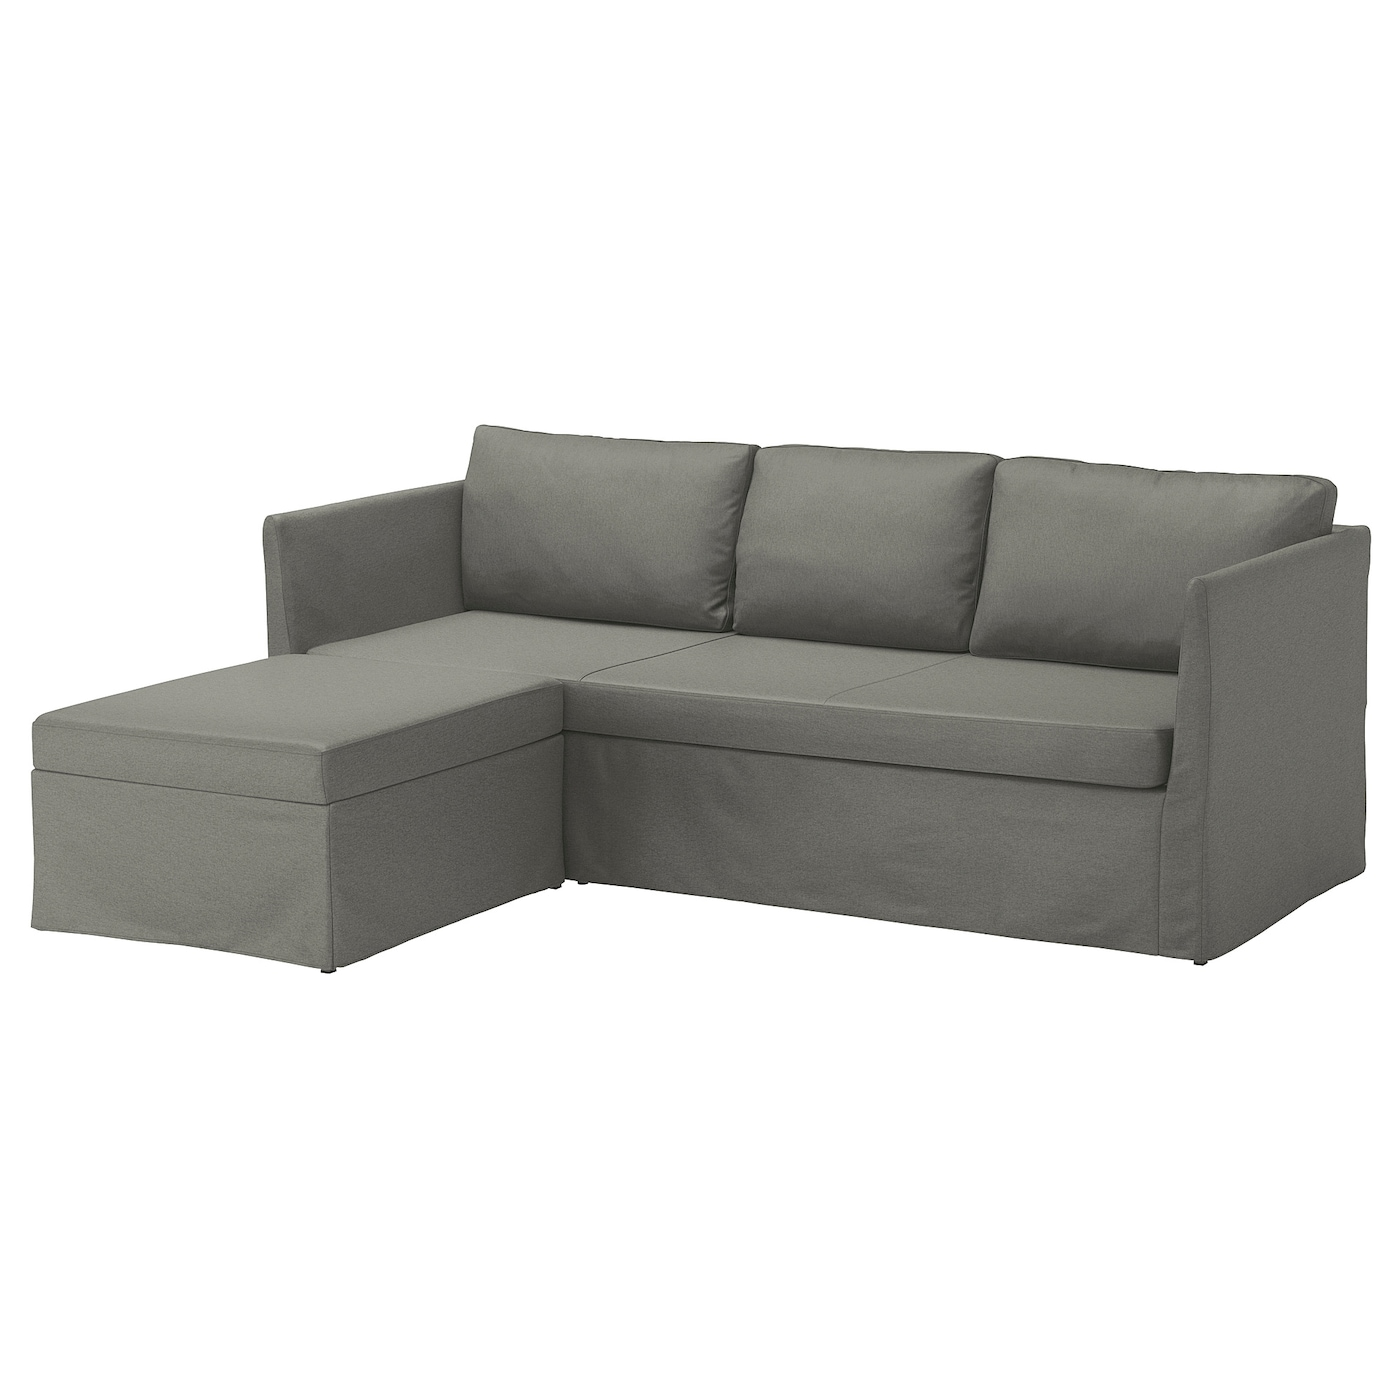 Epic Sofa Beds Clearance 42 About Remodel Living Room Sofa Ideas with Sofa  Beds Clearance